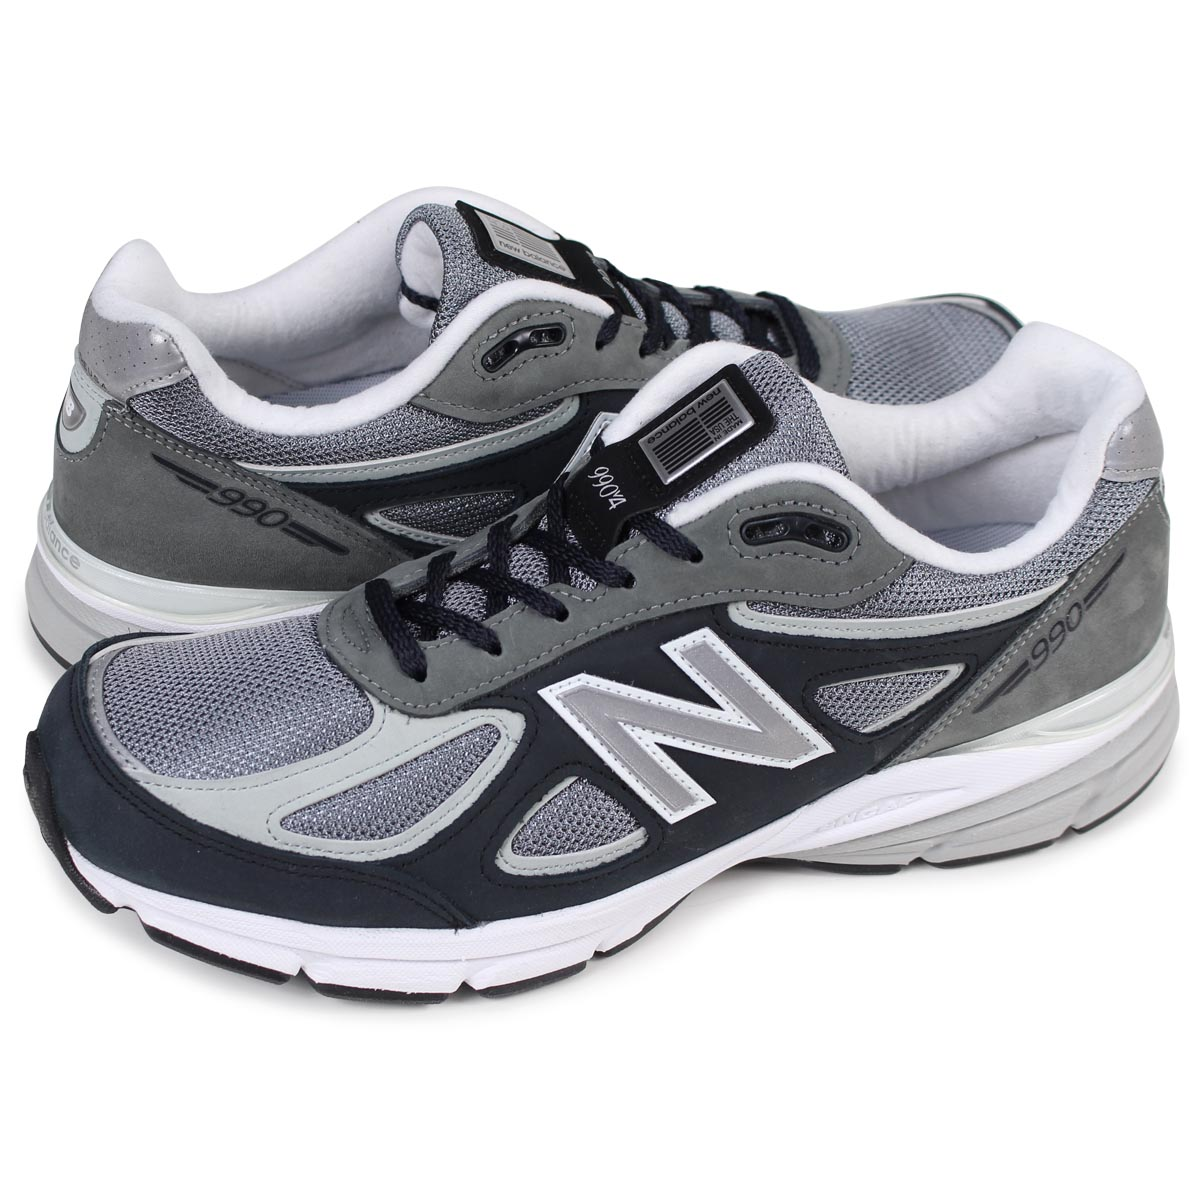 reputable site 9d895 17590 new balance M990XG4 MADE IN USA New Balance 990 men's sneakers D Wise gray  [193]